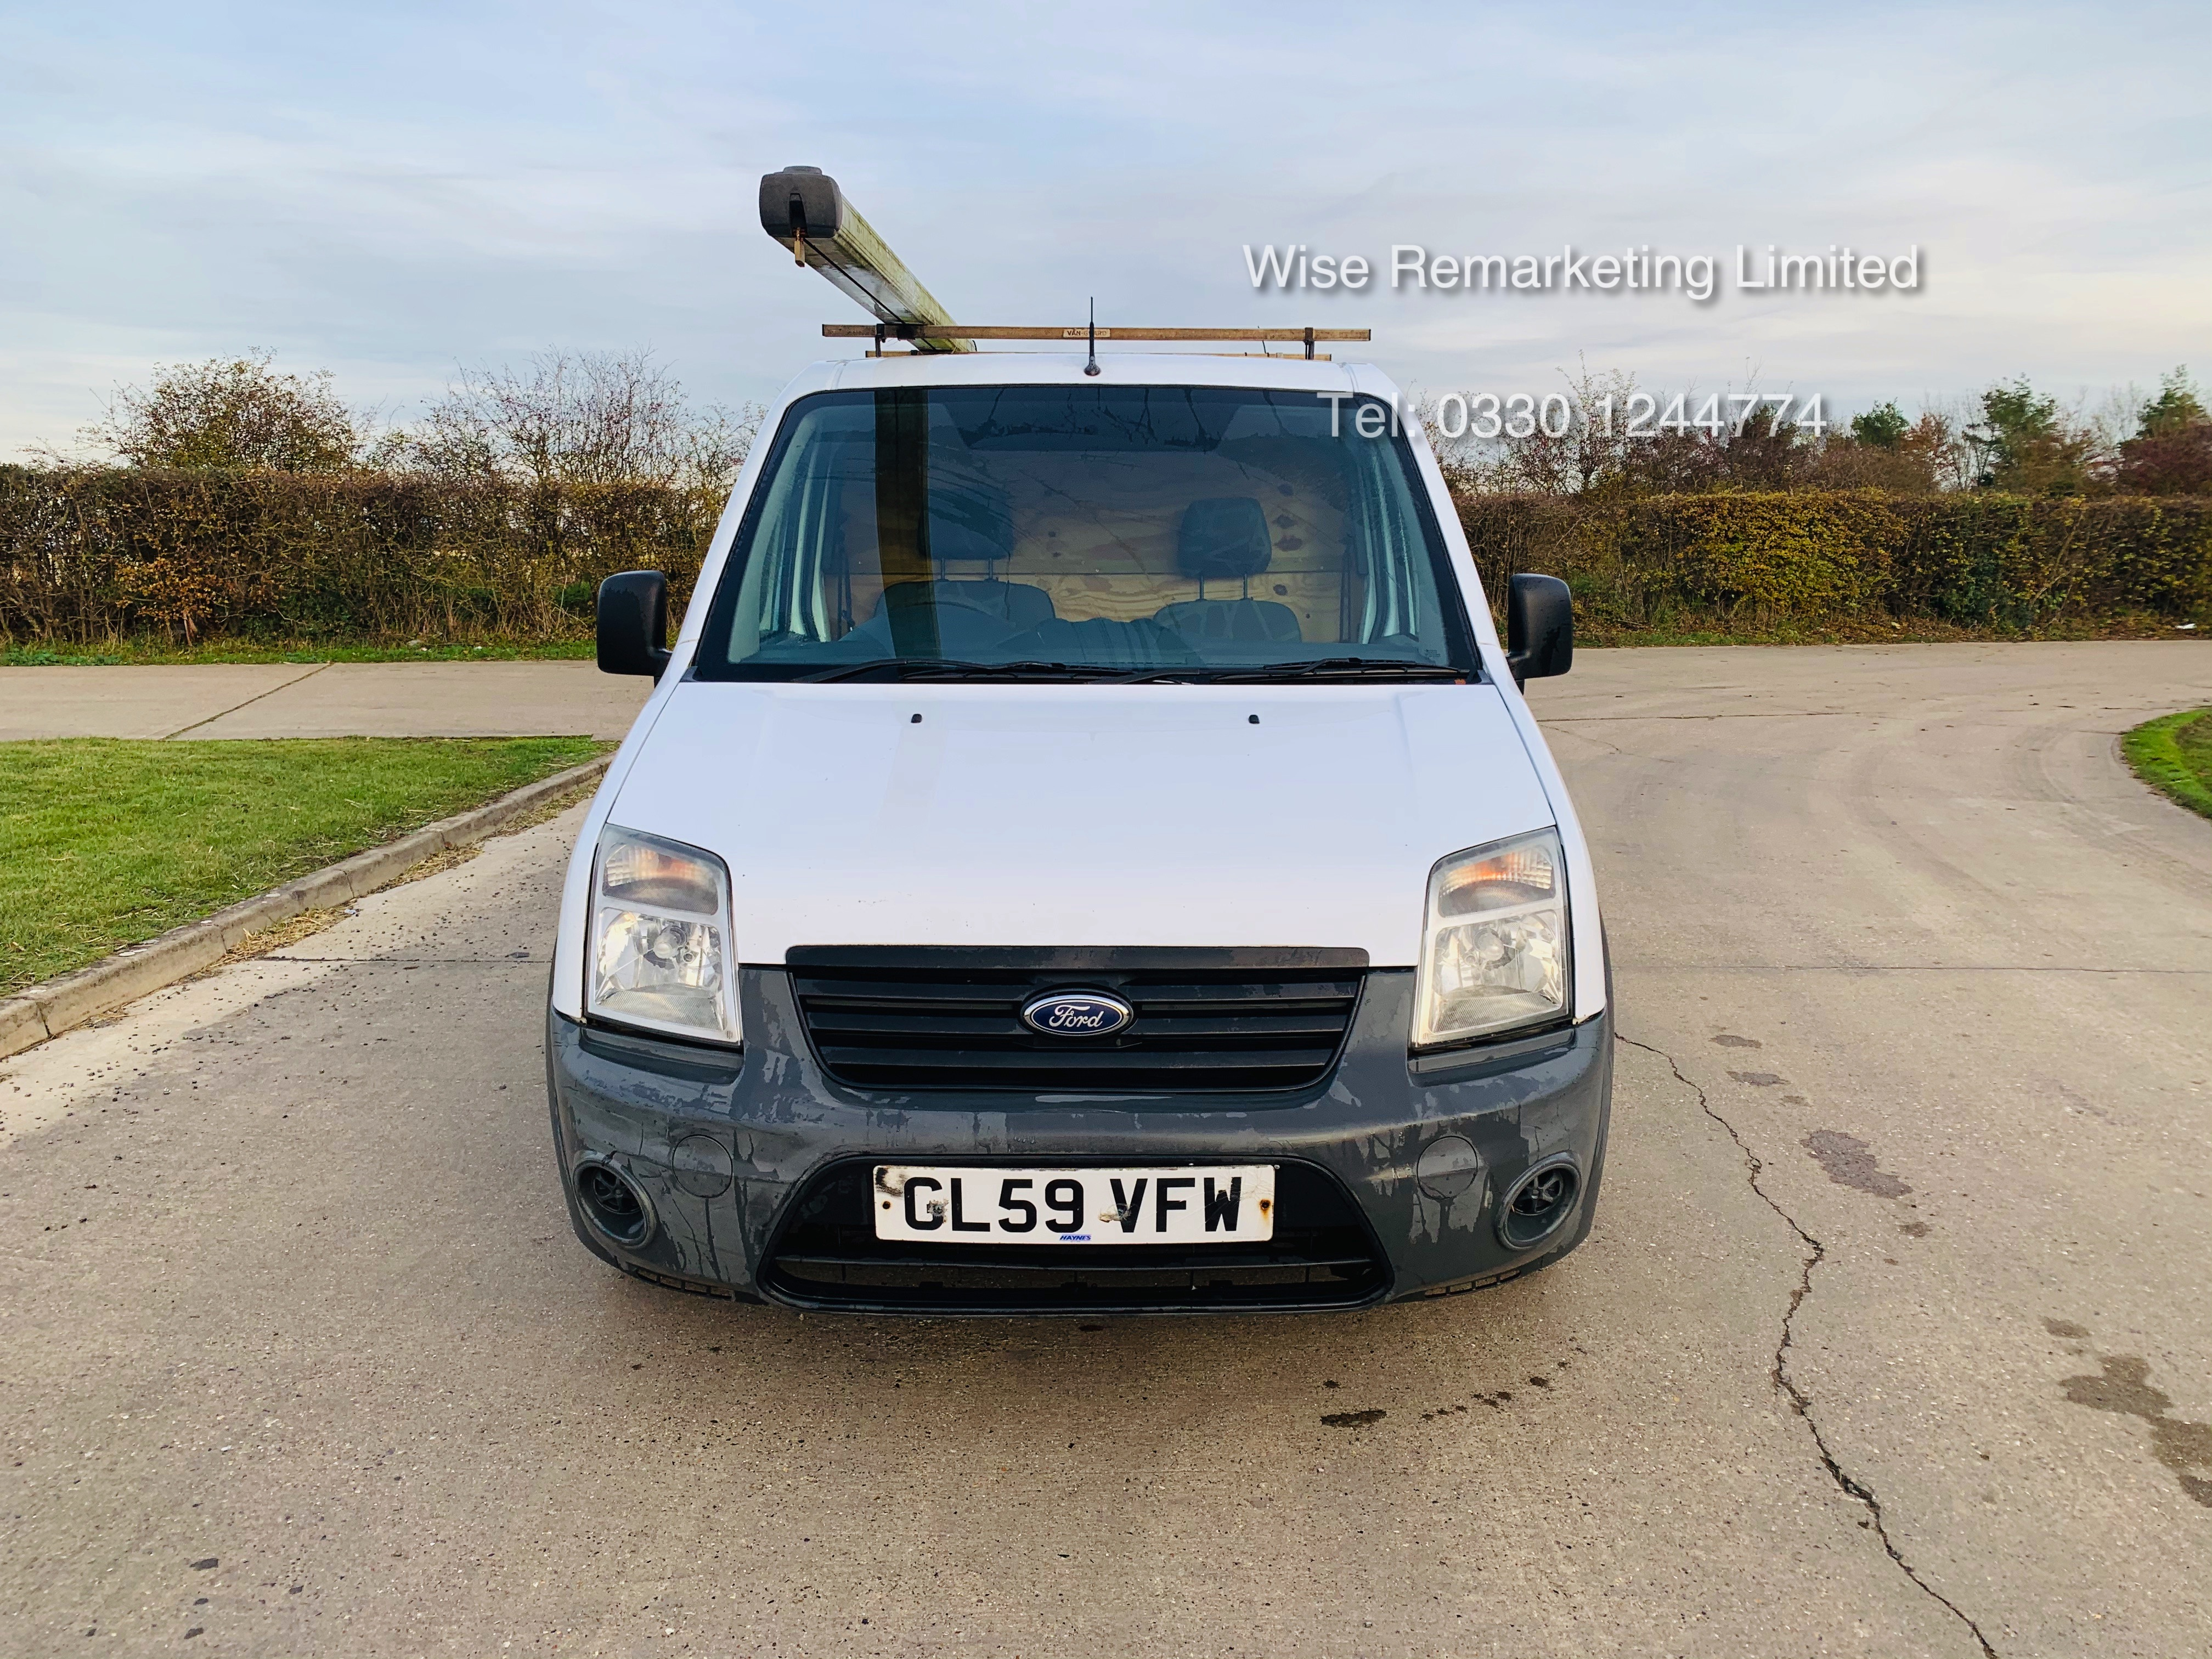 Ford Transit Connect T200 1.8 - 2010 Model - Side Loading Door - Ply Lined - Image 7 of 19